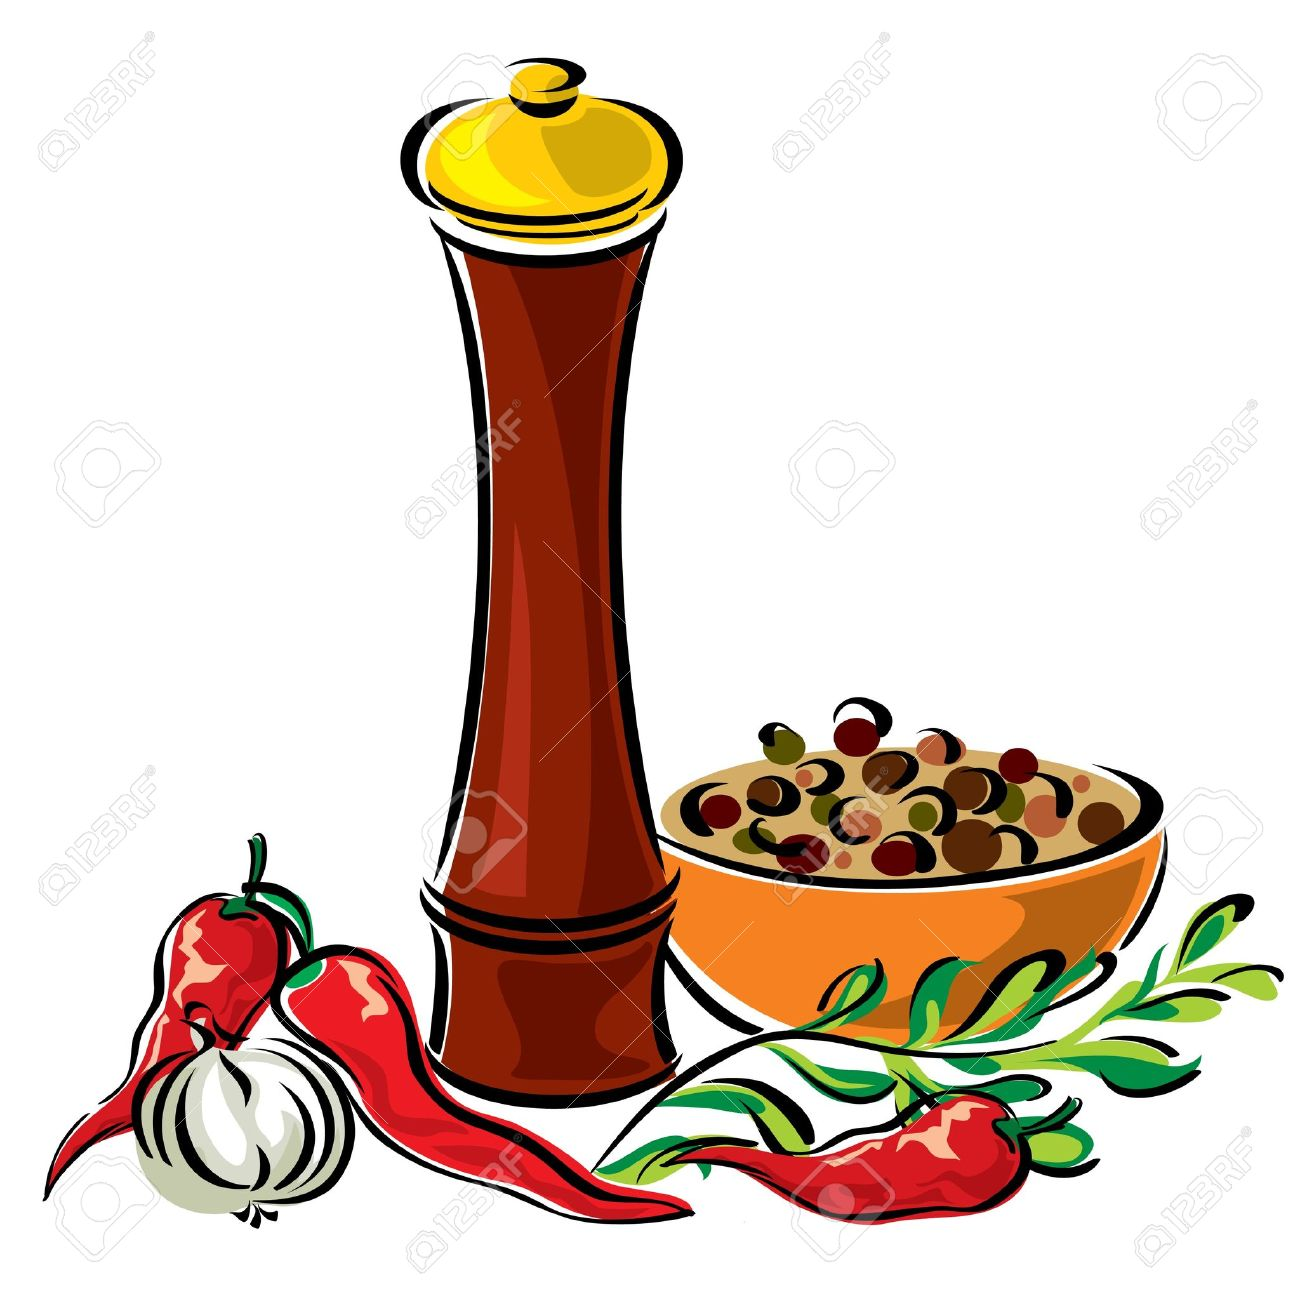 Cooking and Spices Clip art